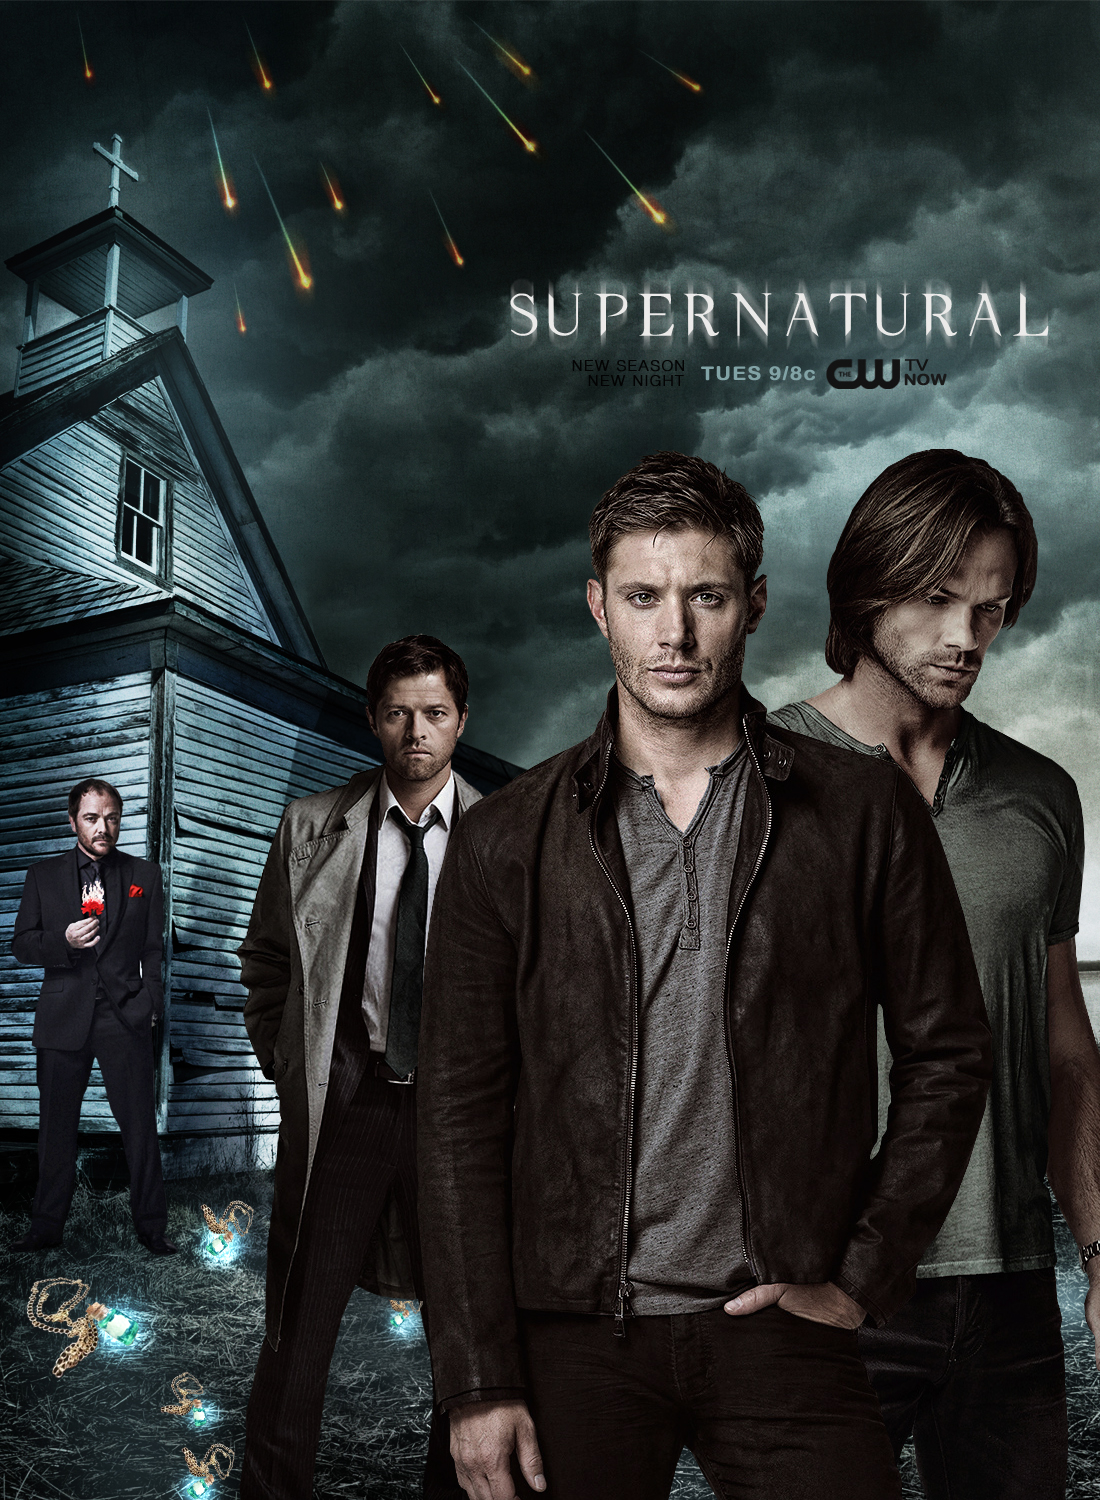 Widescreen Images Collection of Supernatural Quim Eymor